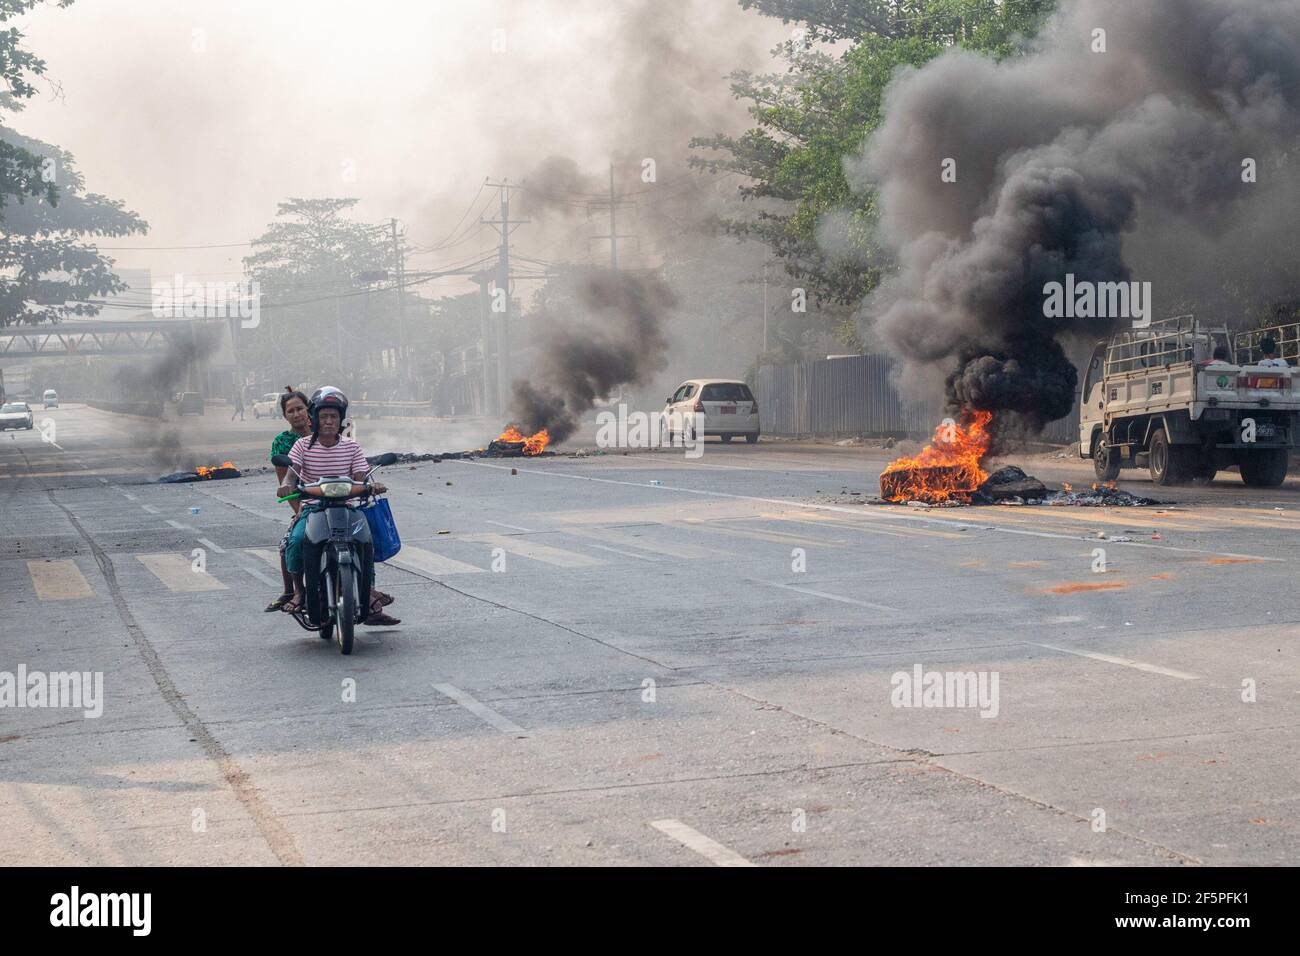 A motorcyclist rides past burning tires on the street during a protest against the military coup.Myanmar police and military soldiers (tatmadow) attacked protesters with rubber bullets, live ammunition, tear gas and stun bombs in response to anti-military coup protesters on Saturday, killing more than 90 people and injured many others. At least 300 people have been killed in Myanmar since the 1 February coup, a UN human rights official has said. Myanmar's military detained State Counsellor of Myanmar Aung San Suu Kyi on February 01, 2021 and declared a state of emergency while seizing the powe Stock Photo